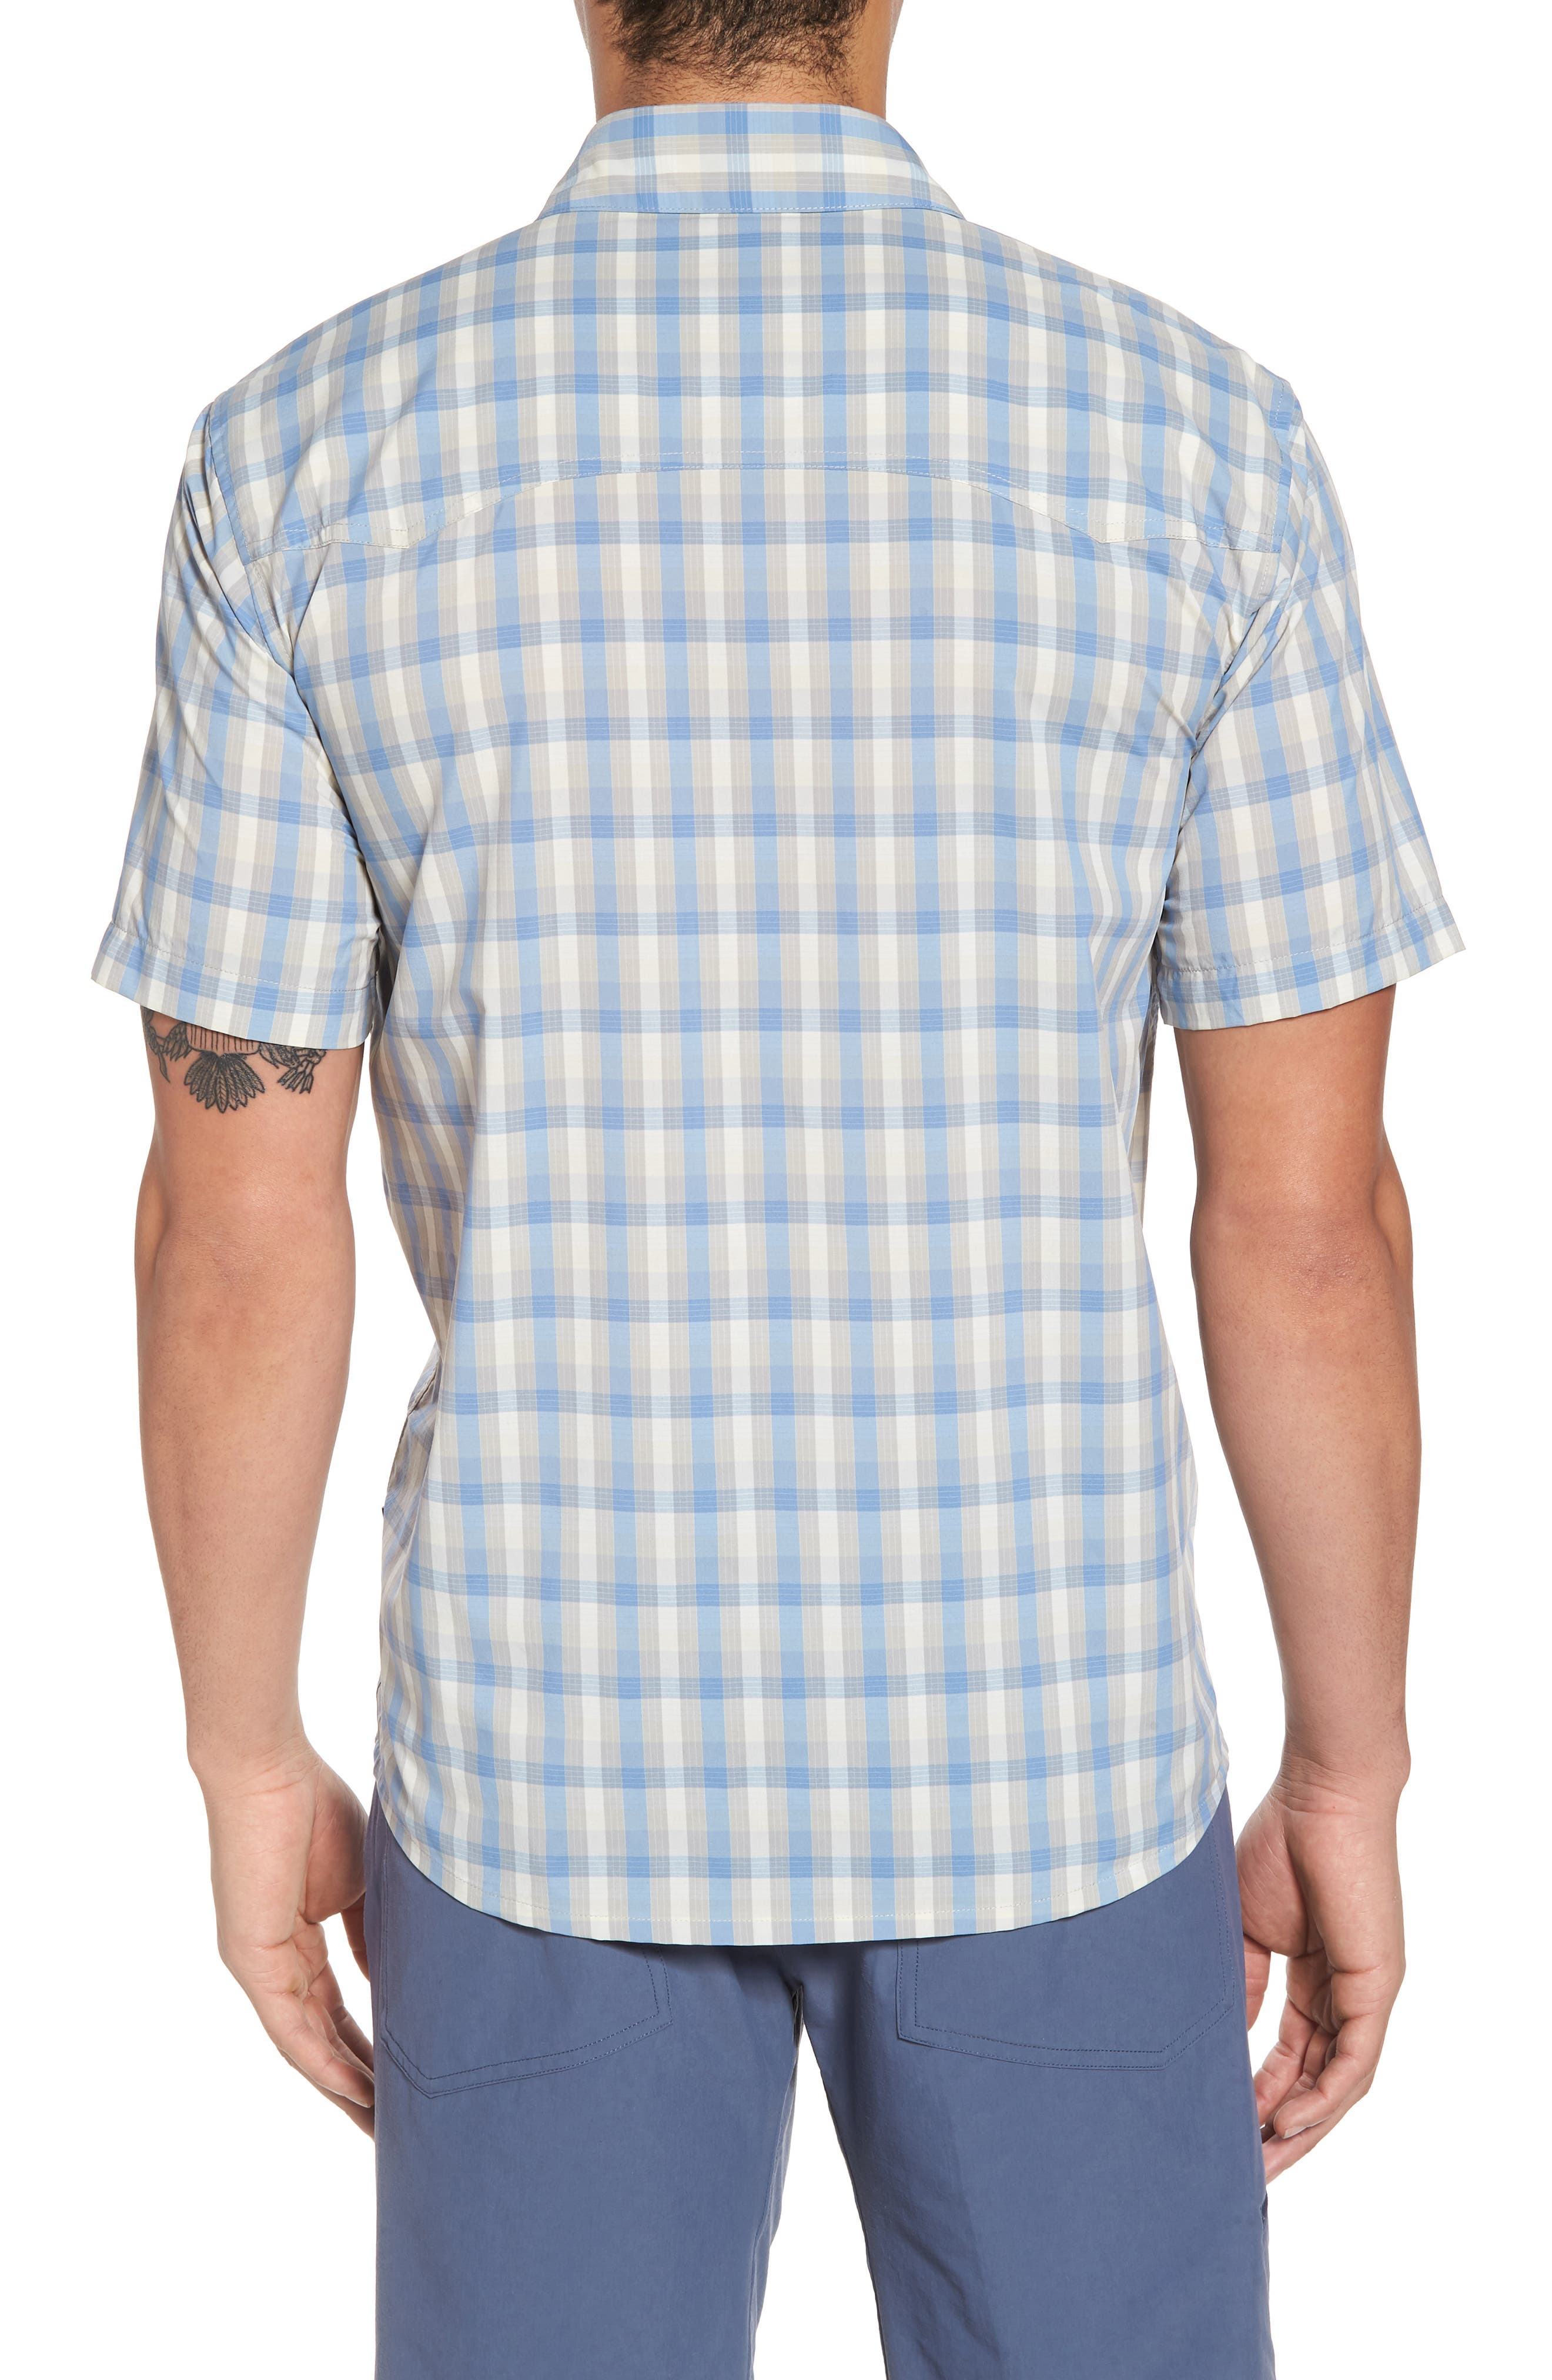 M's Sun Plaid Stretch Hybrid Shirt,                             Alternate thumbnail 2, color,                             Mauro Railroad Blue